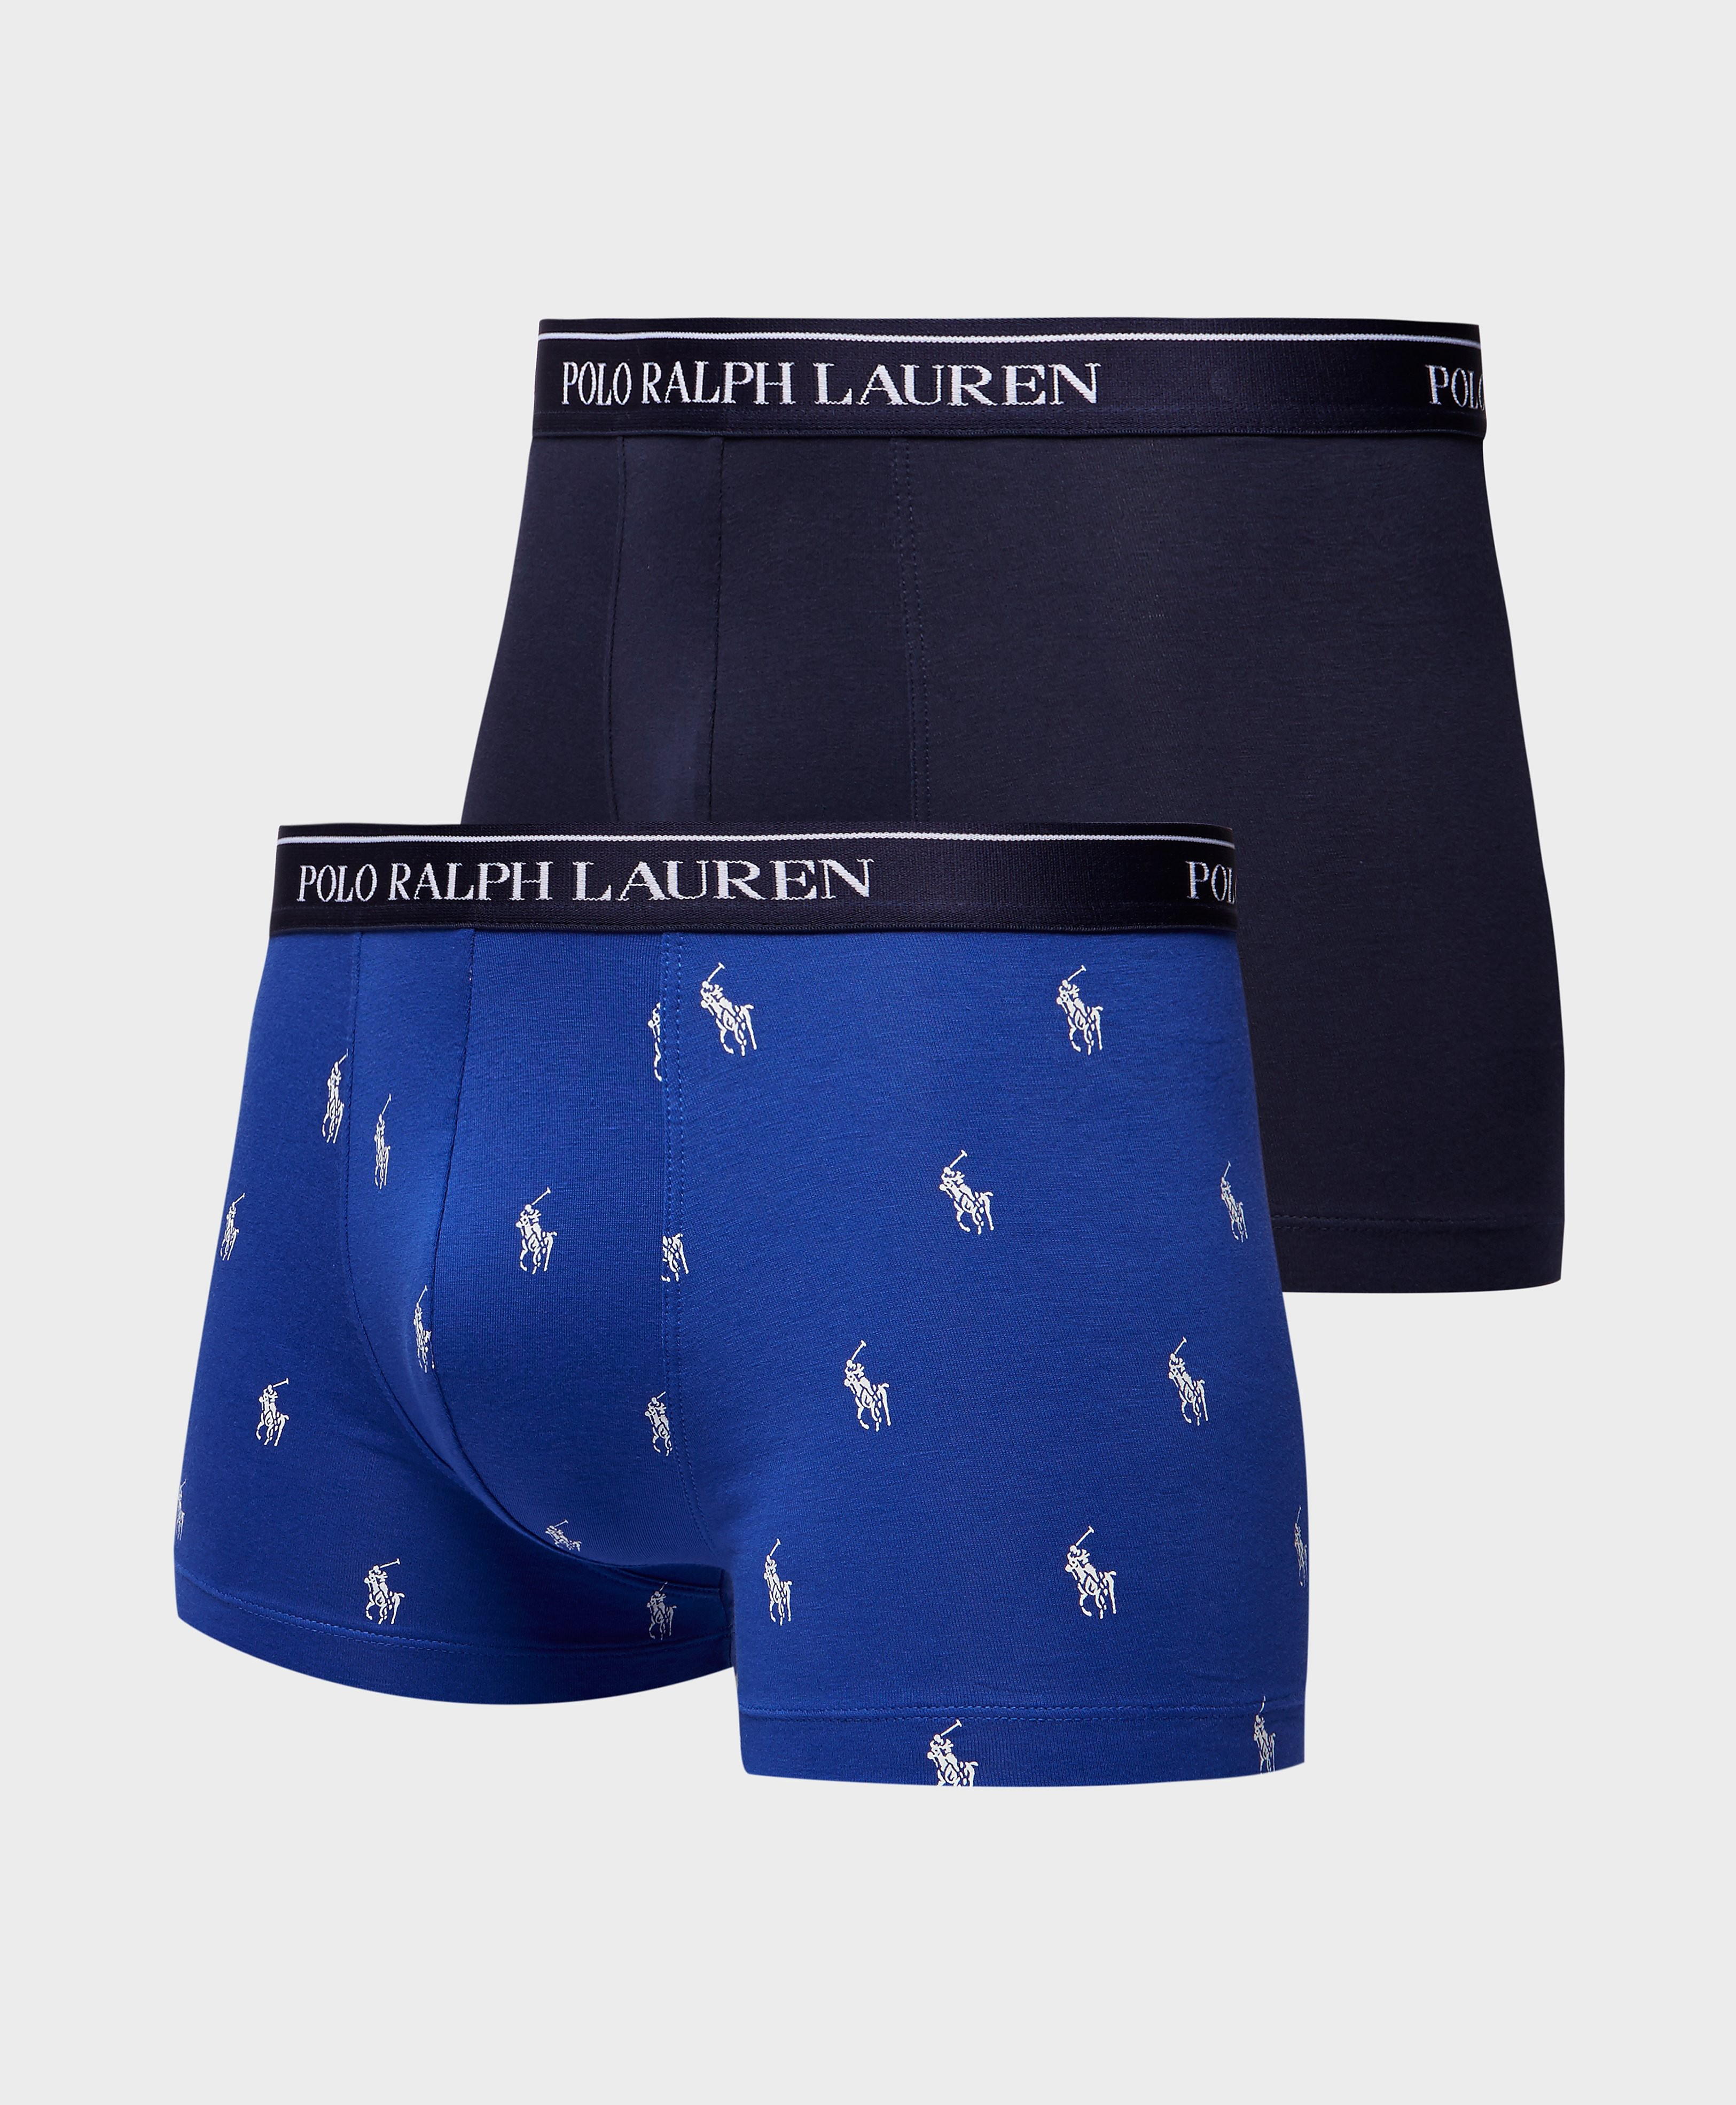 Polo Ralph Lauren 2-Pack Trunks